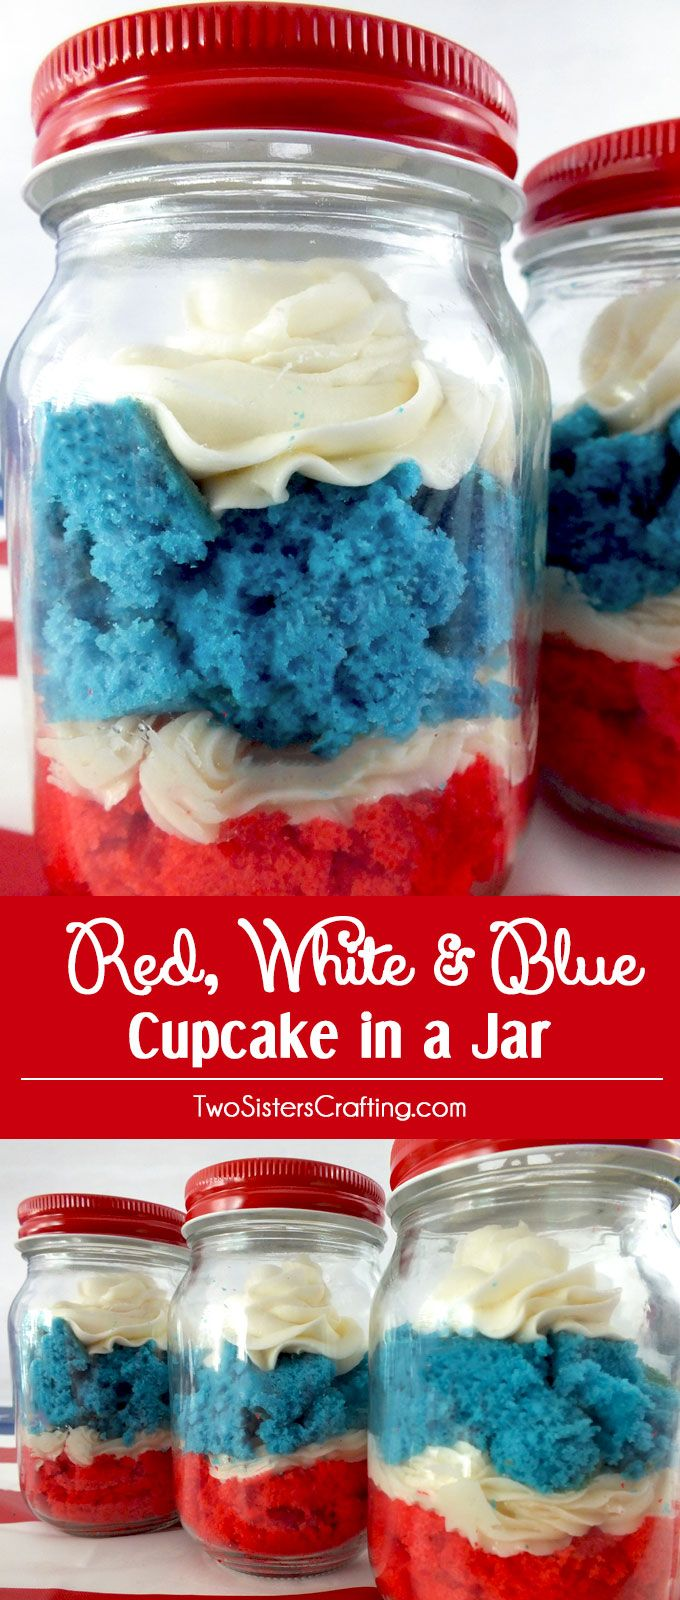 Our Red White and Blue Cupcake in a Jar featuring delicious ...